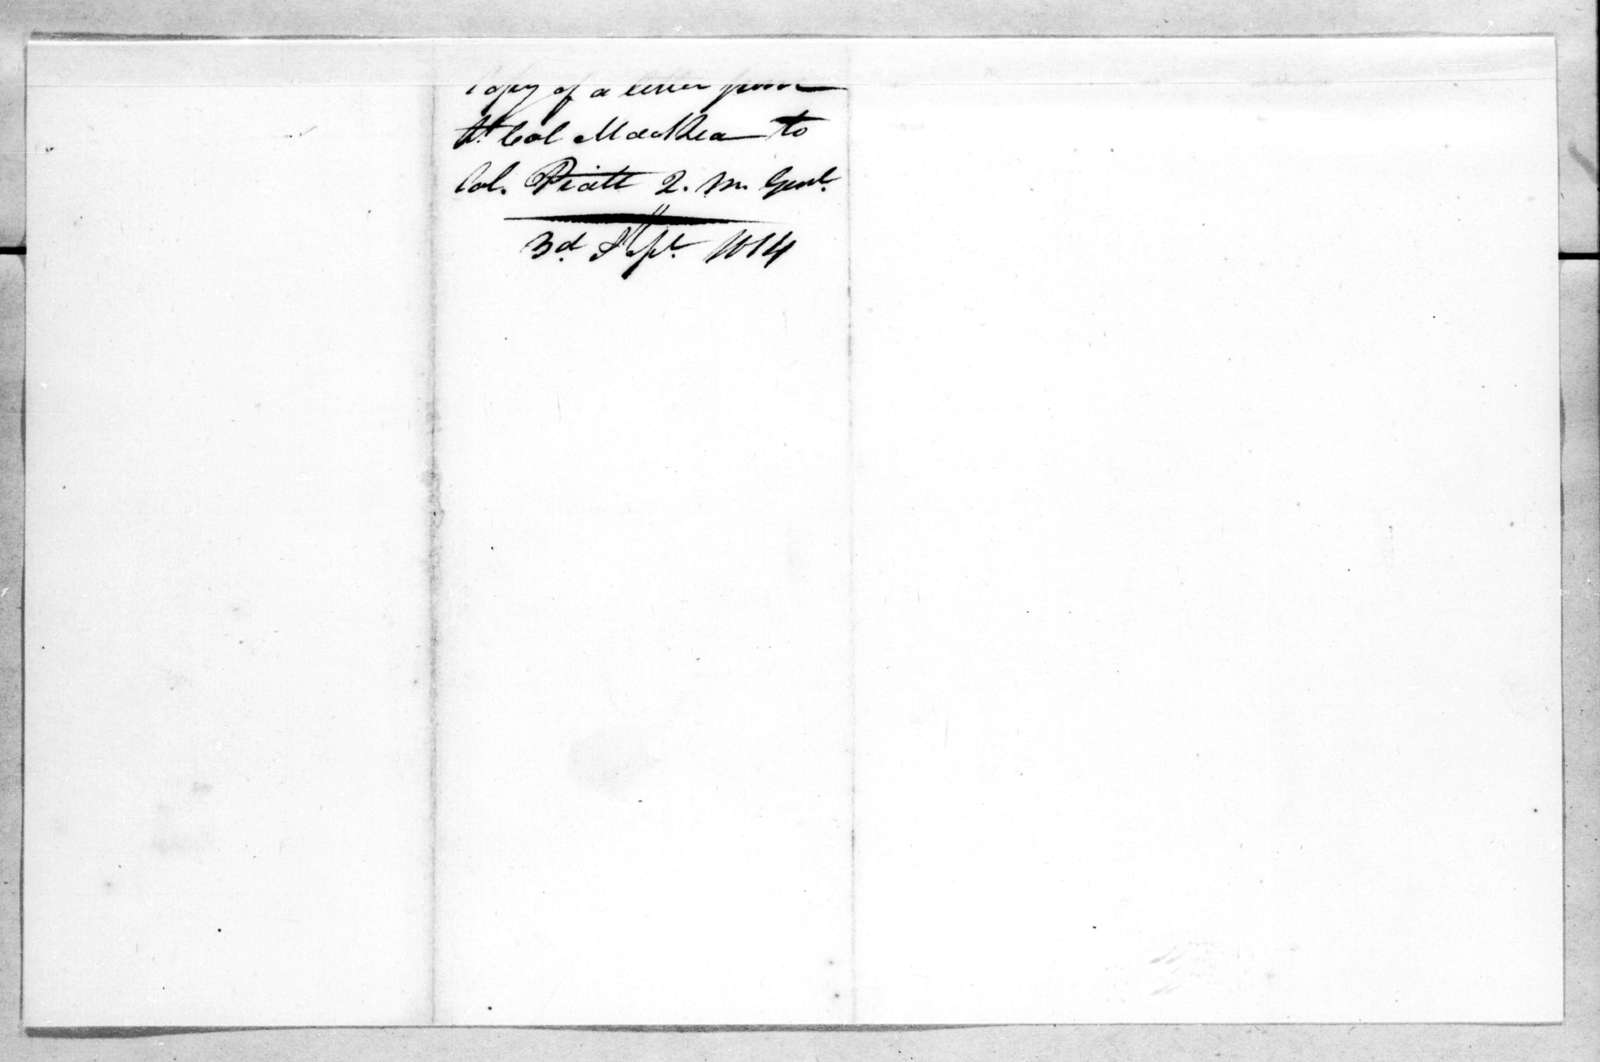 William MacRea to William Pratt, September 3, 1814